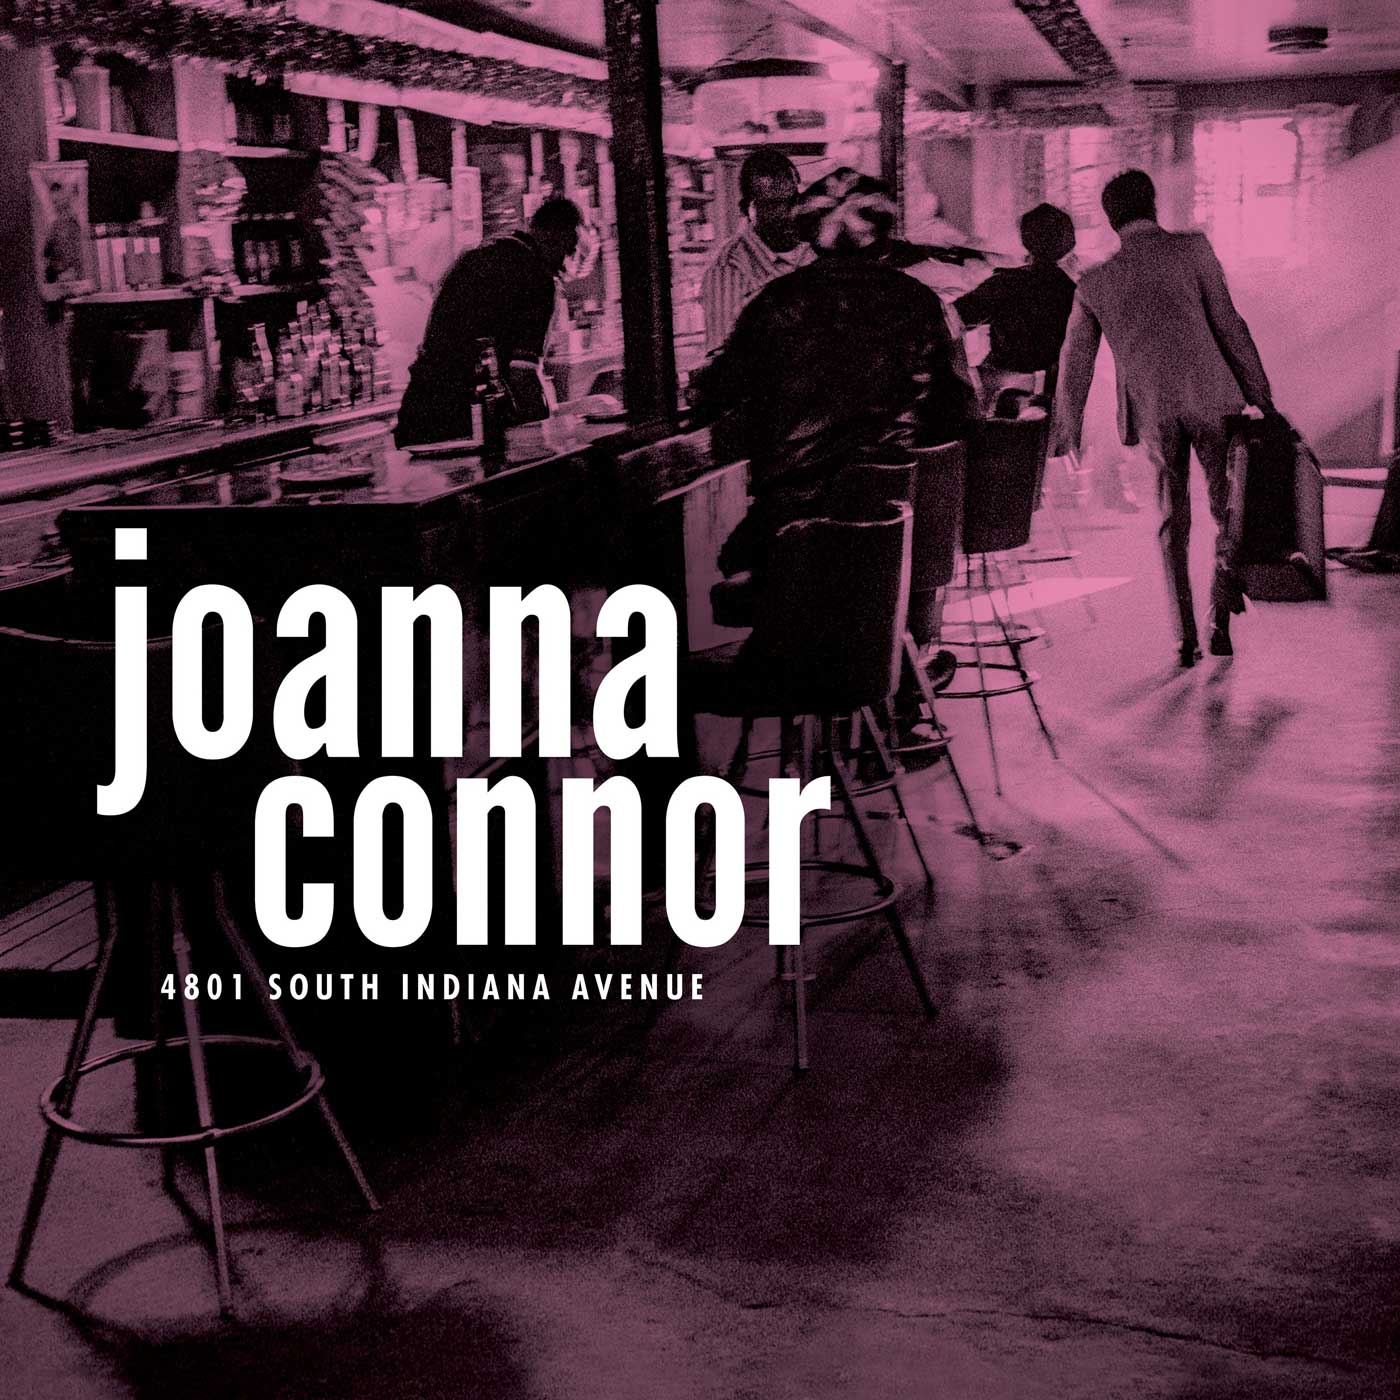 Joanna Connor / The house is really rocking with Destination | MetalTalk